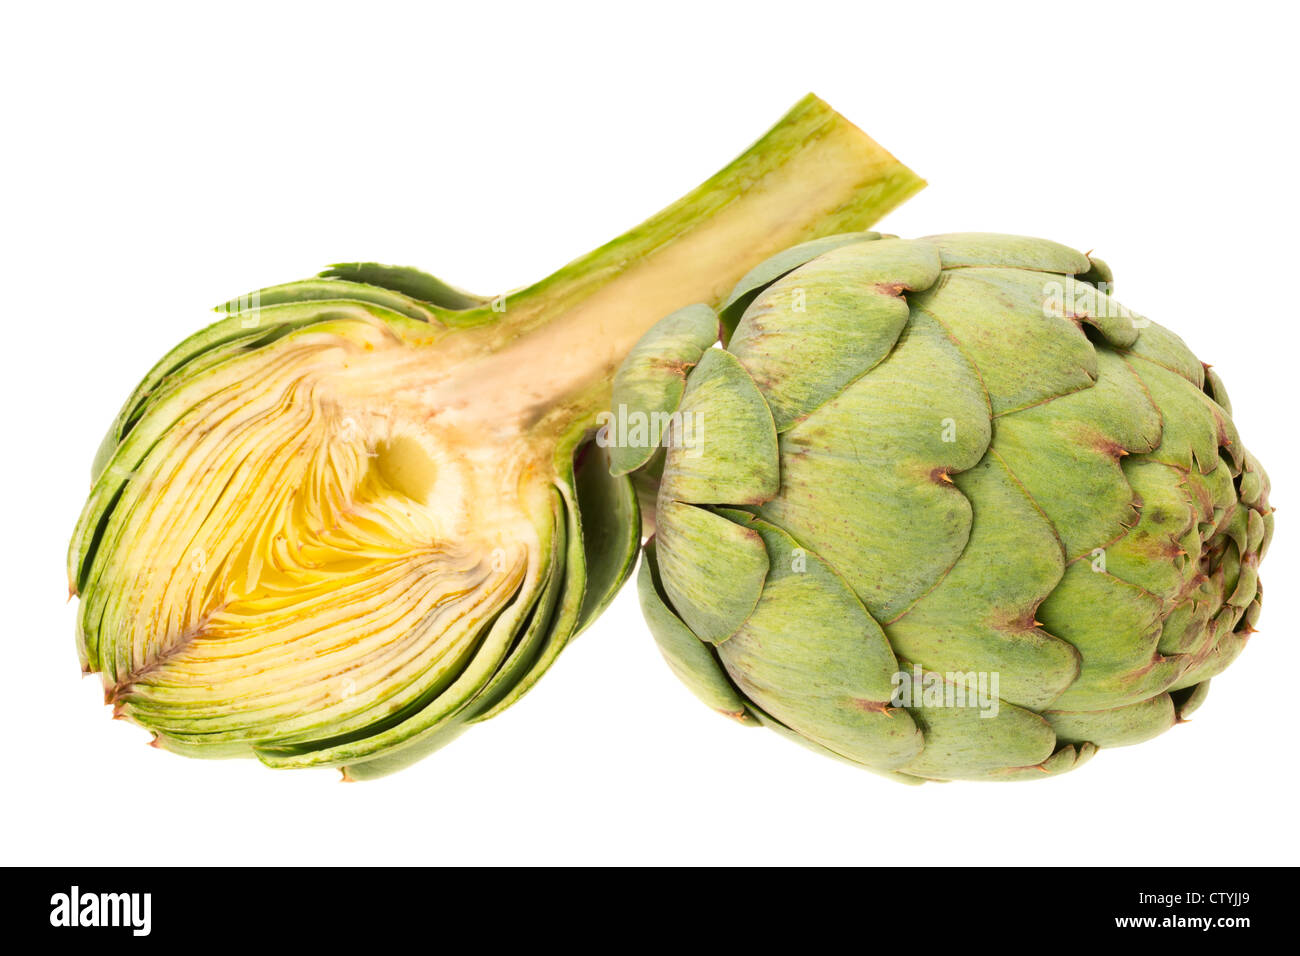 Fresh artichokes - studio shot with a white background Stock Photo